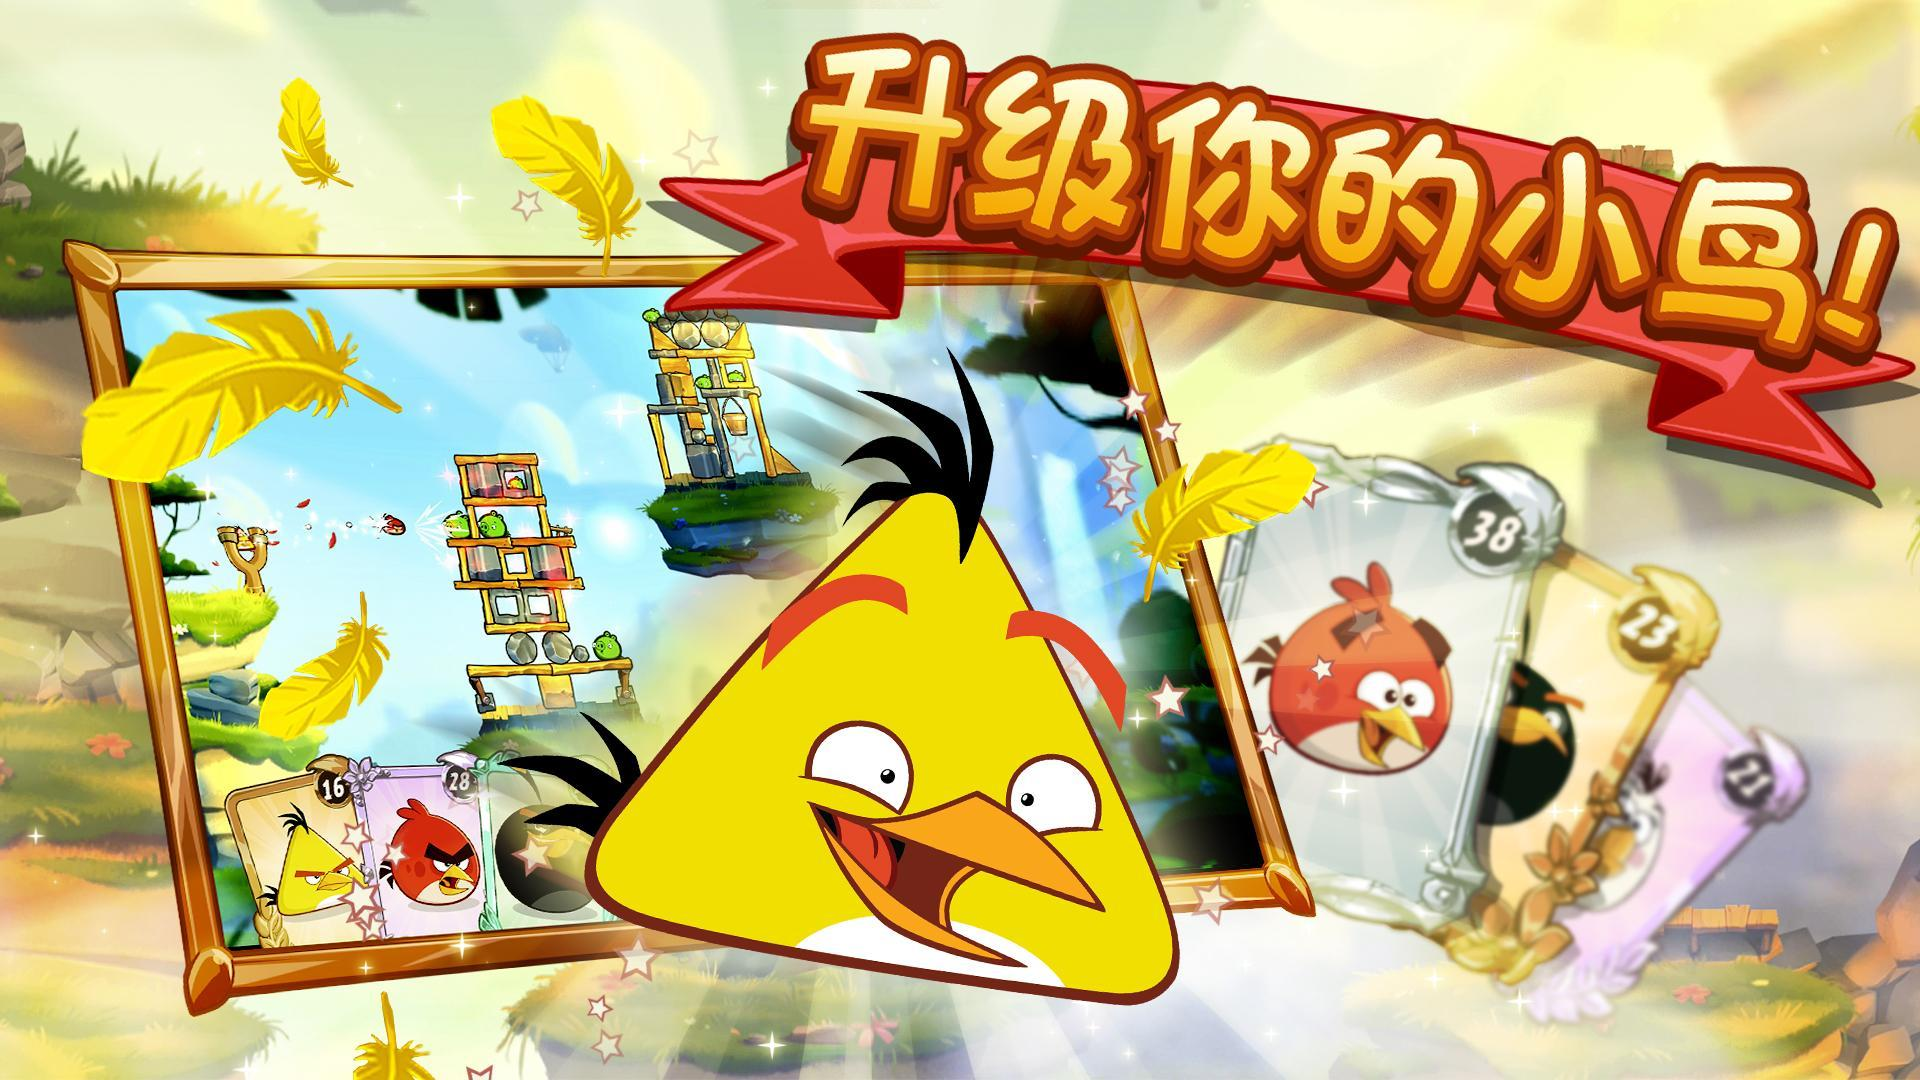 Angry Birds 2 APK Download, defeat piggy boss and rescue